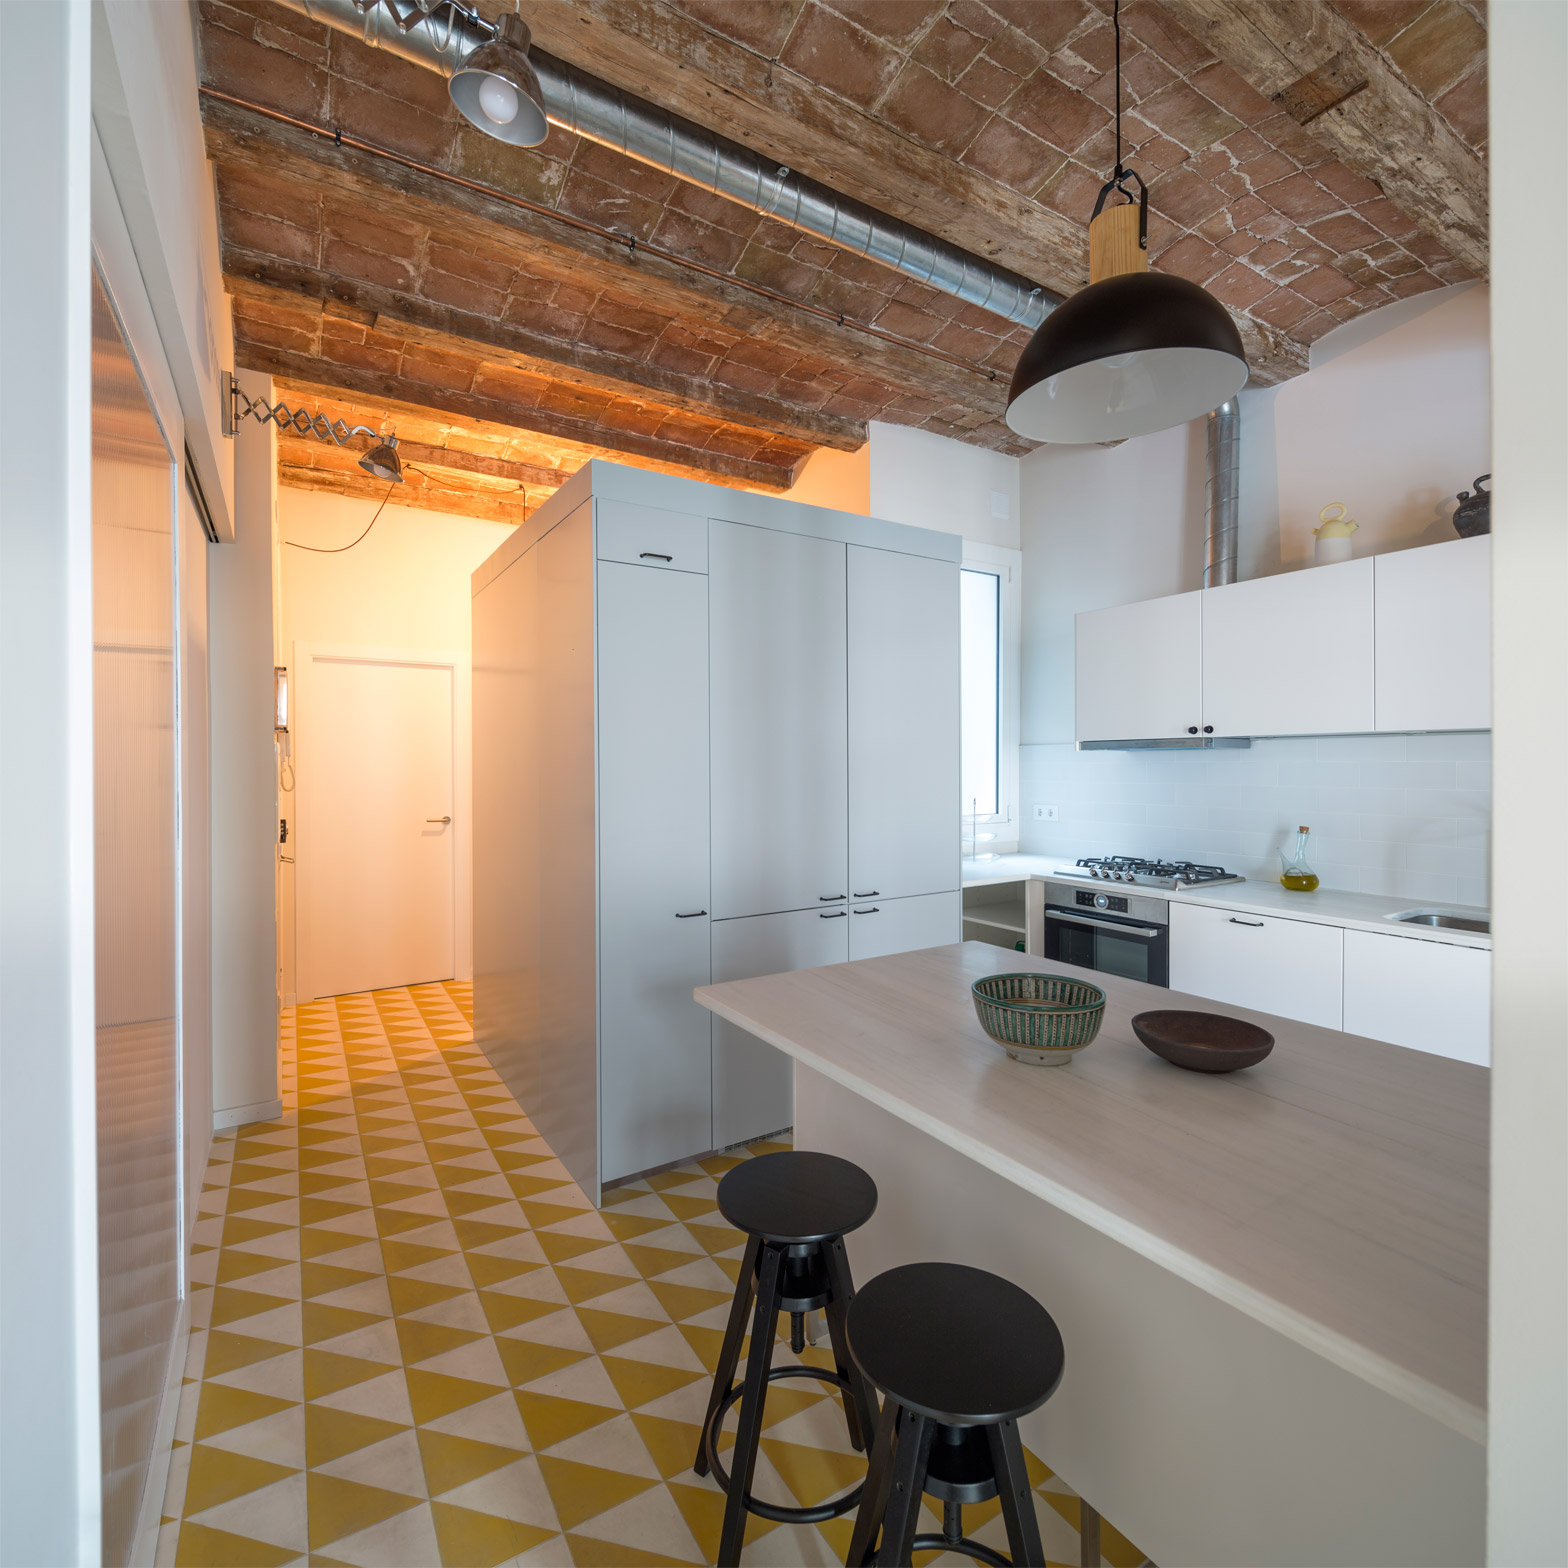 Nook Architects adds new openings to Barcelona apartment